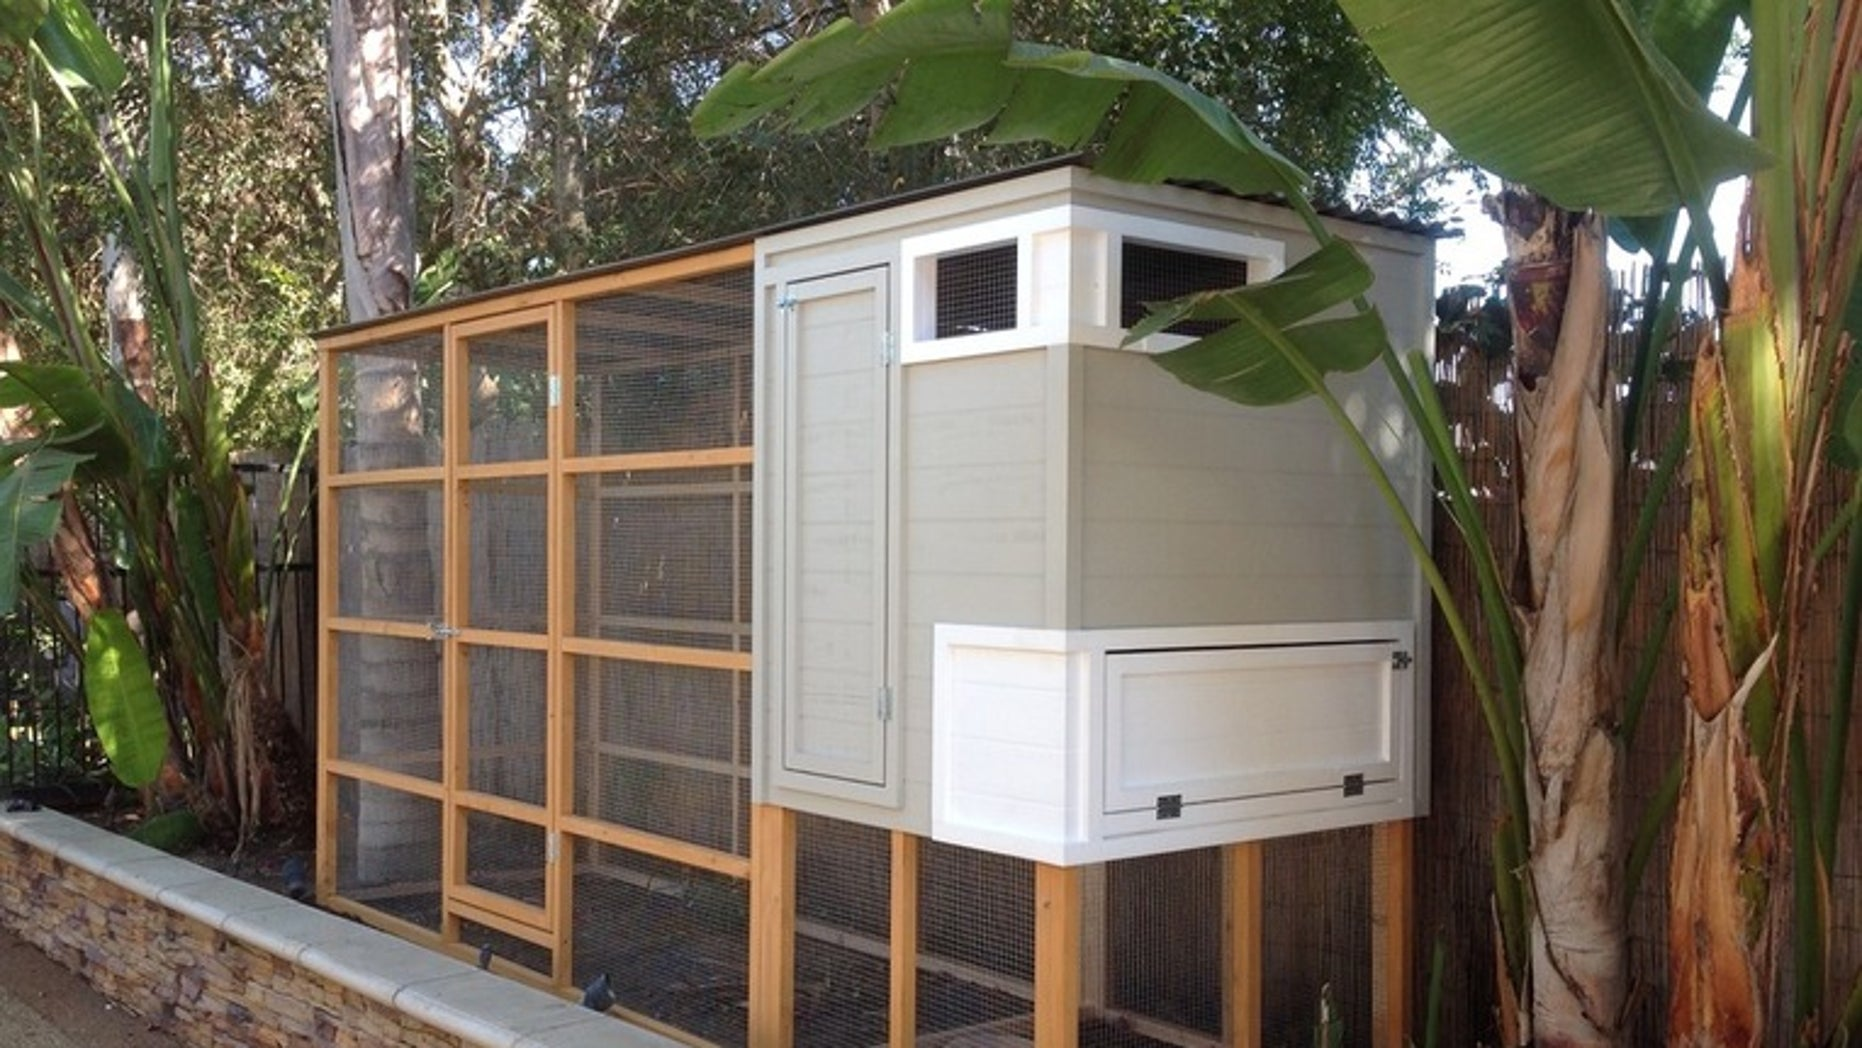 Backyard Chicken Coup is a backyard chicken coop right for you? | fox news